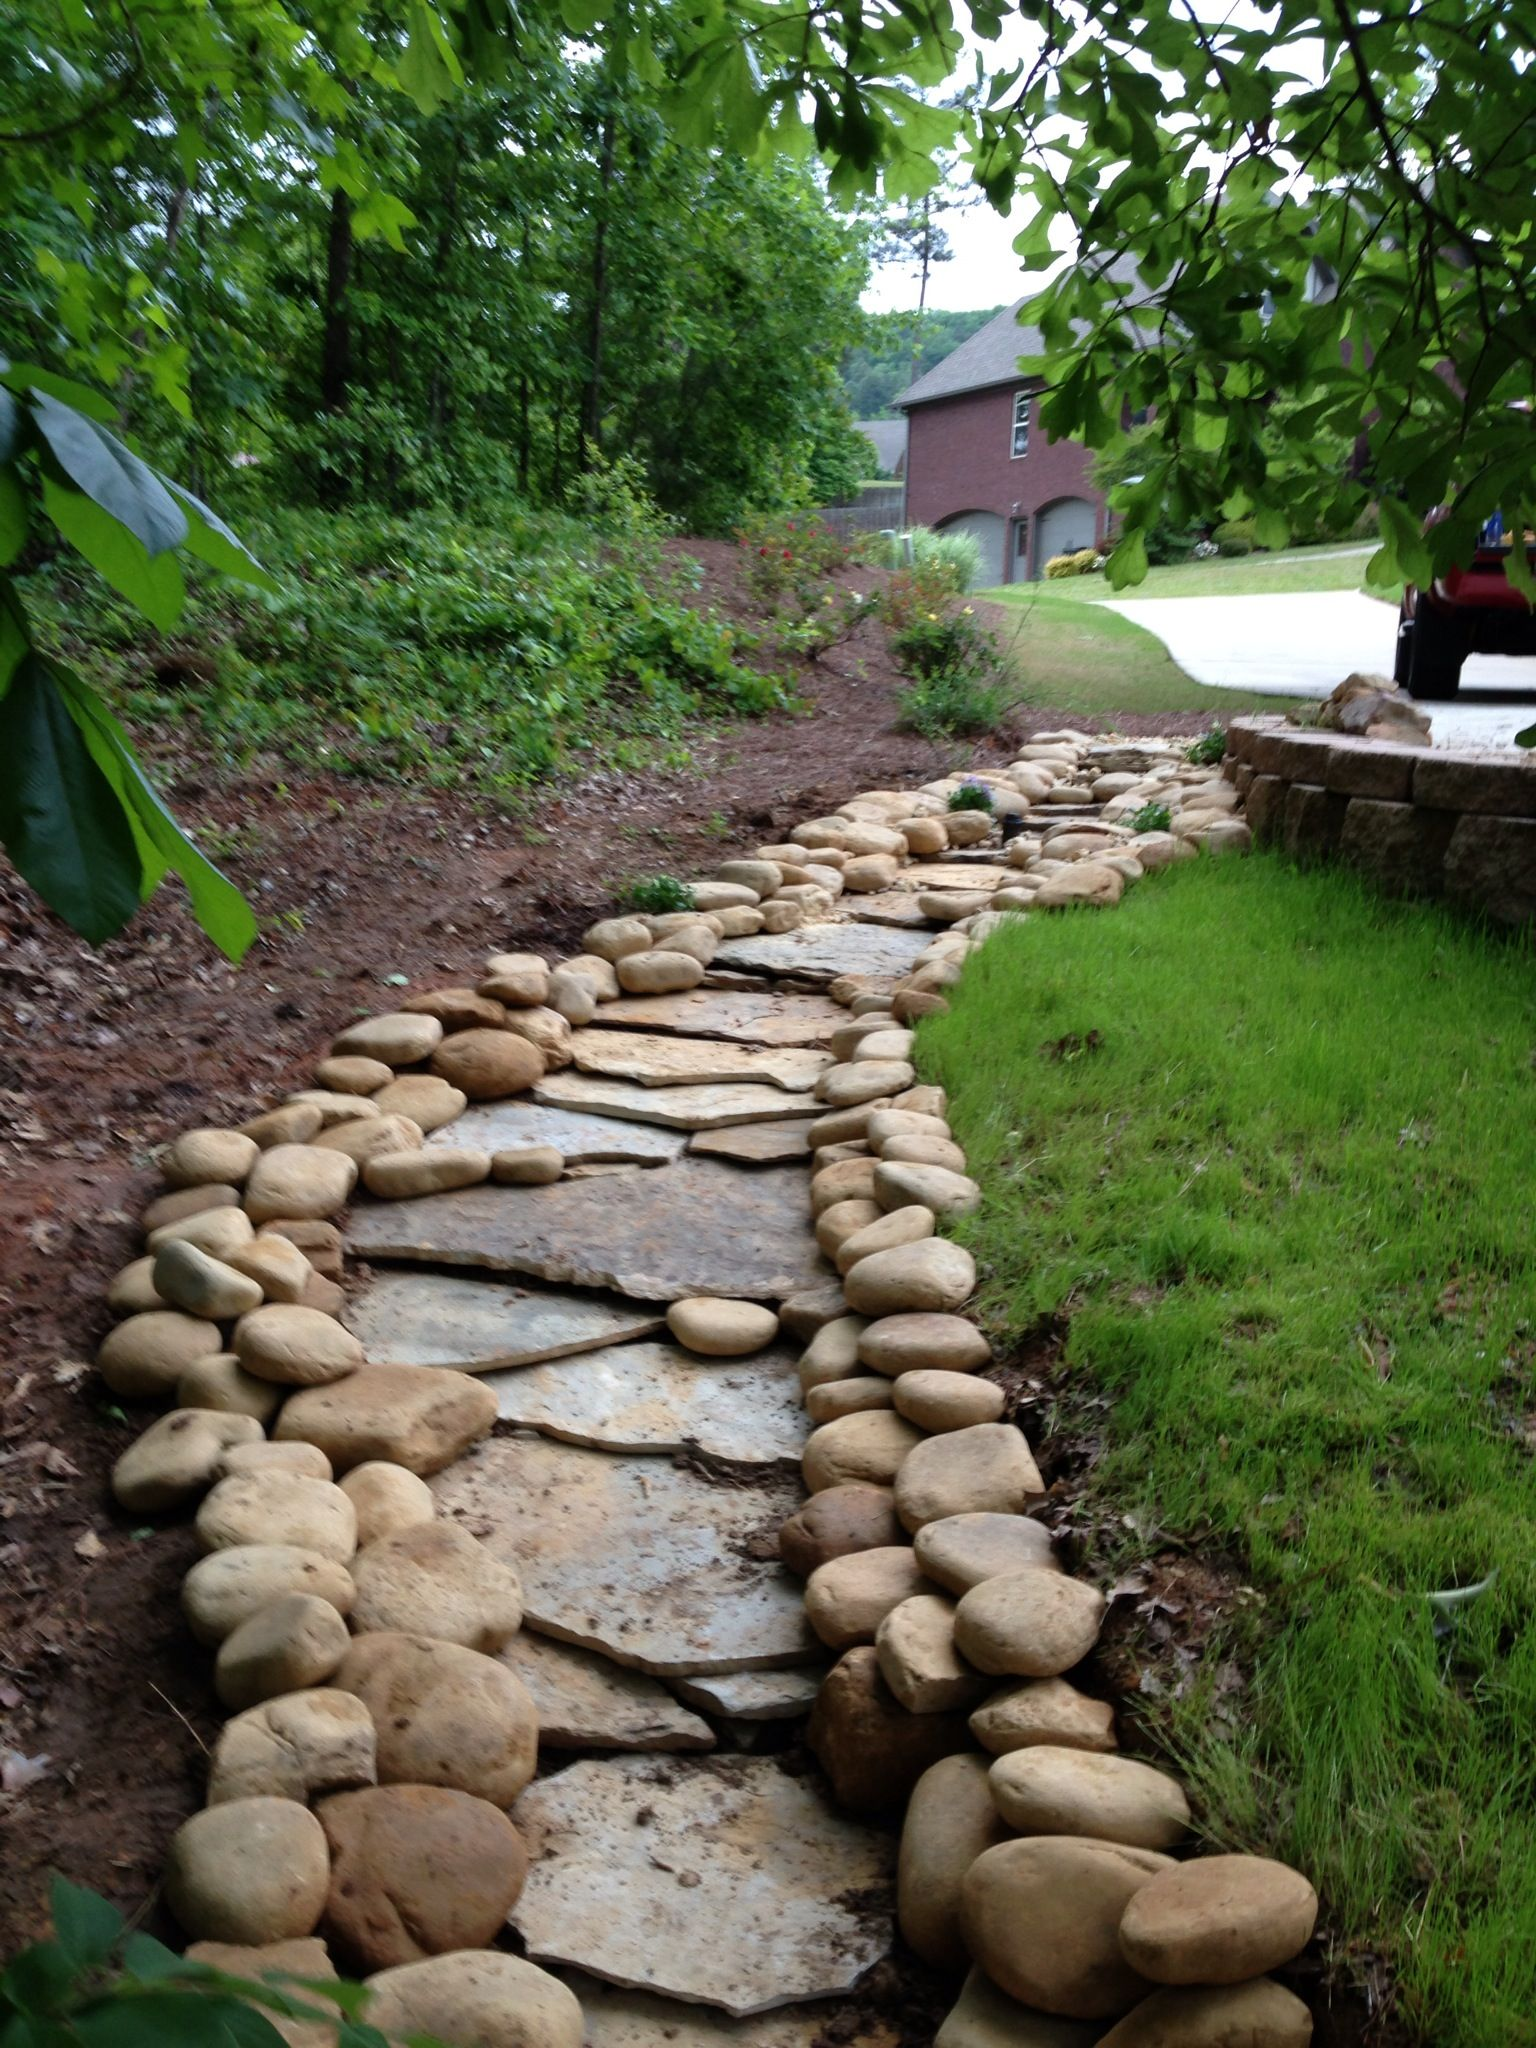 The Flat Stone Fragments In Creek Bed Might Make This A Good